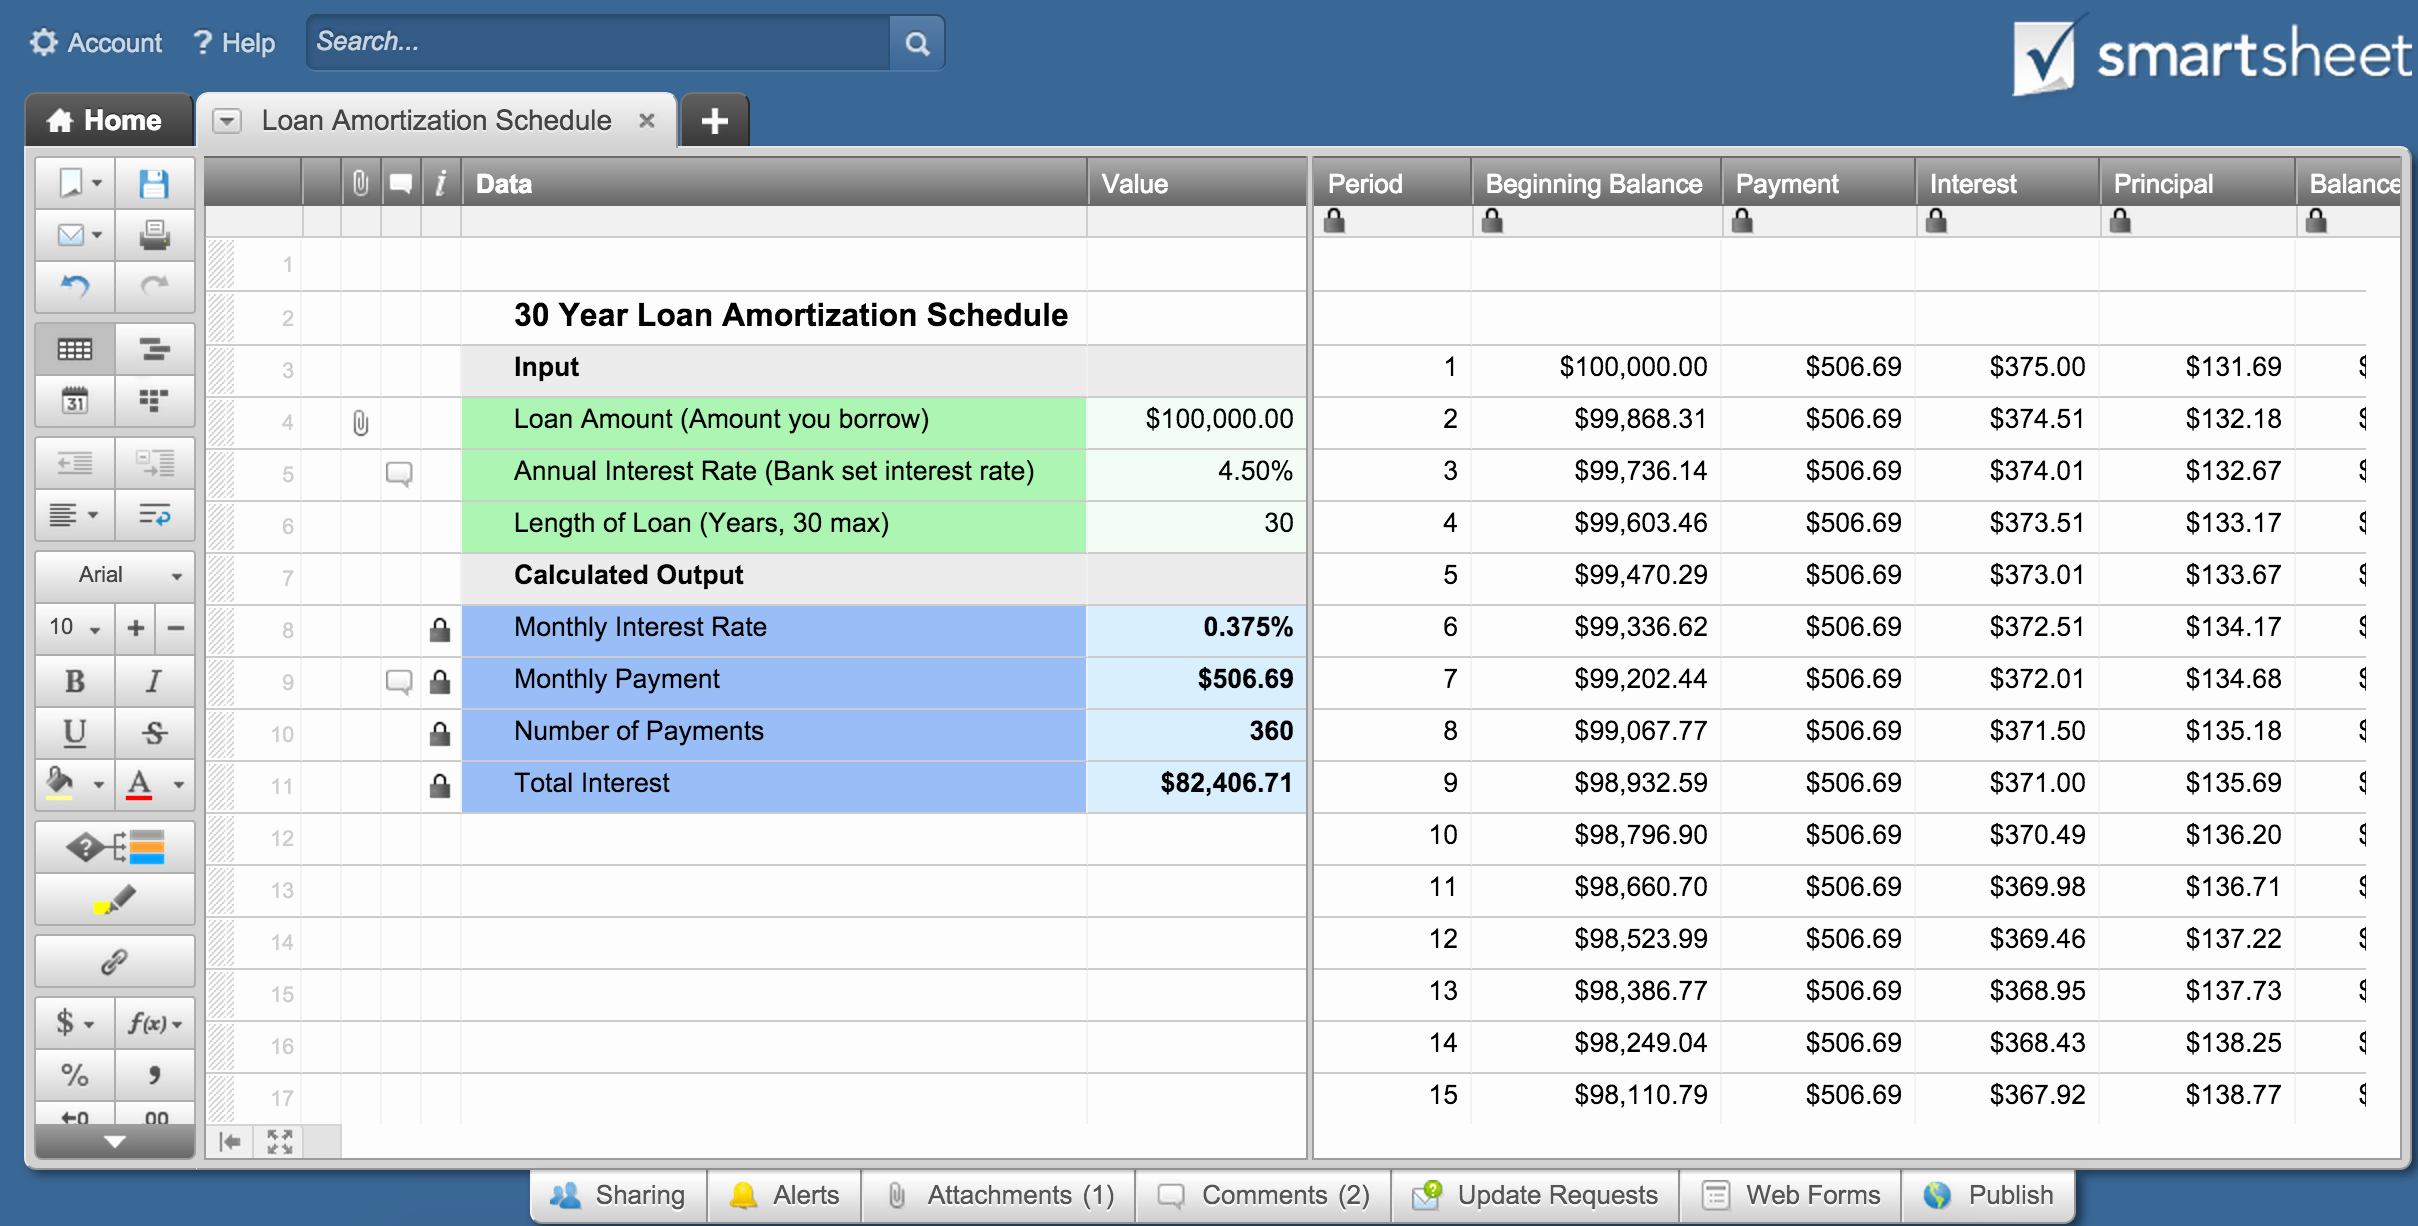 Loan Amortization with Extra Payment Beautiful Excel Loan Amortization Schedule with Extra Principal